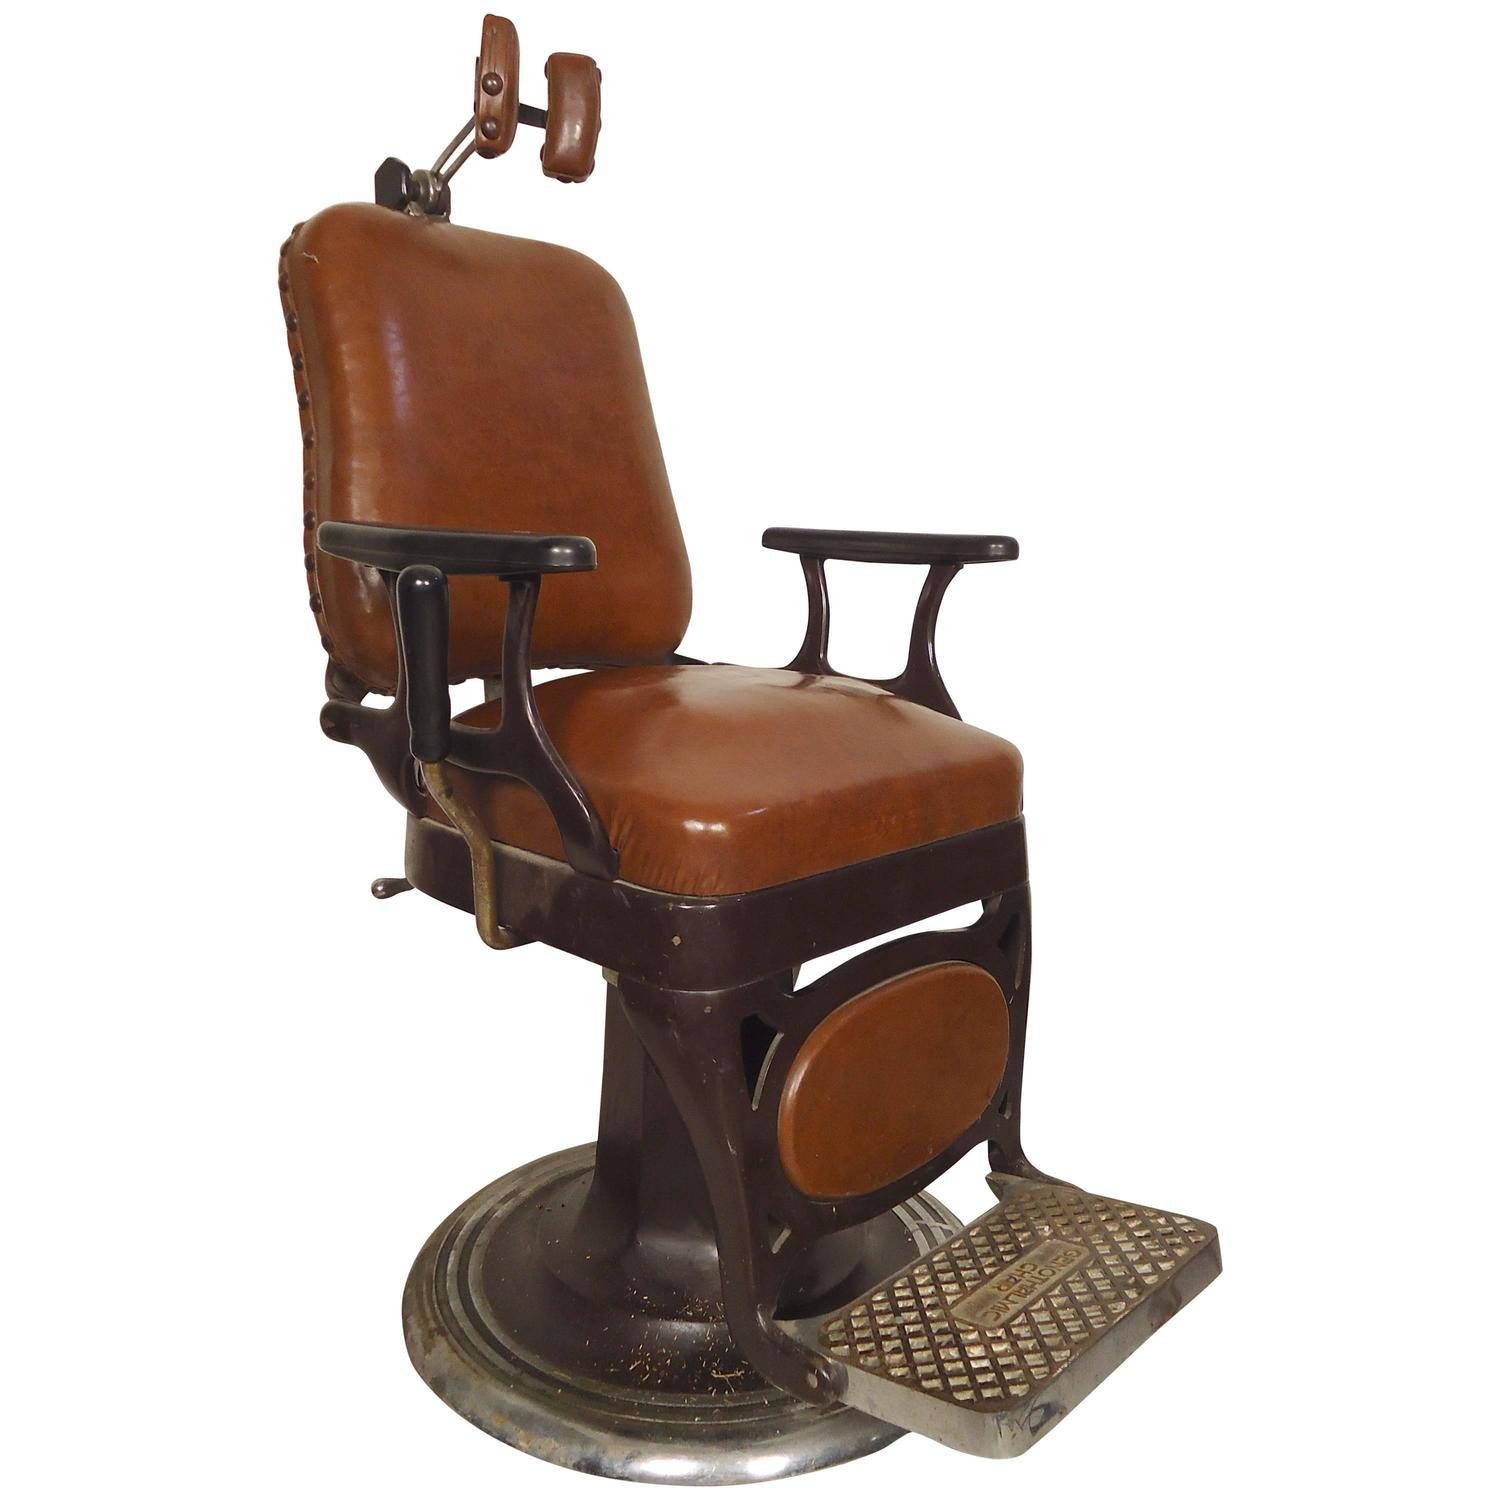 Antique Barber Chair For Sale Vintage Barber Style Chair For Sale At 1stdibs